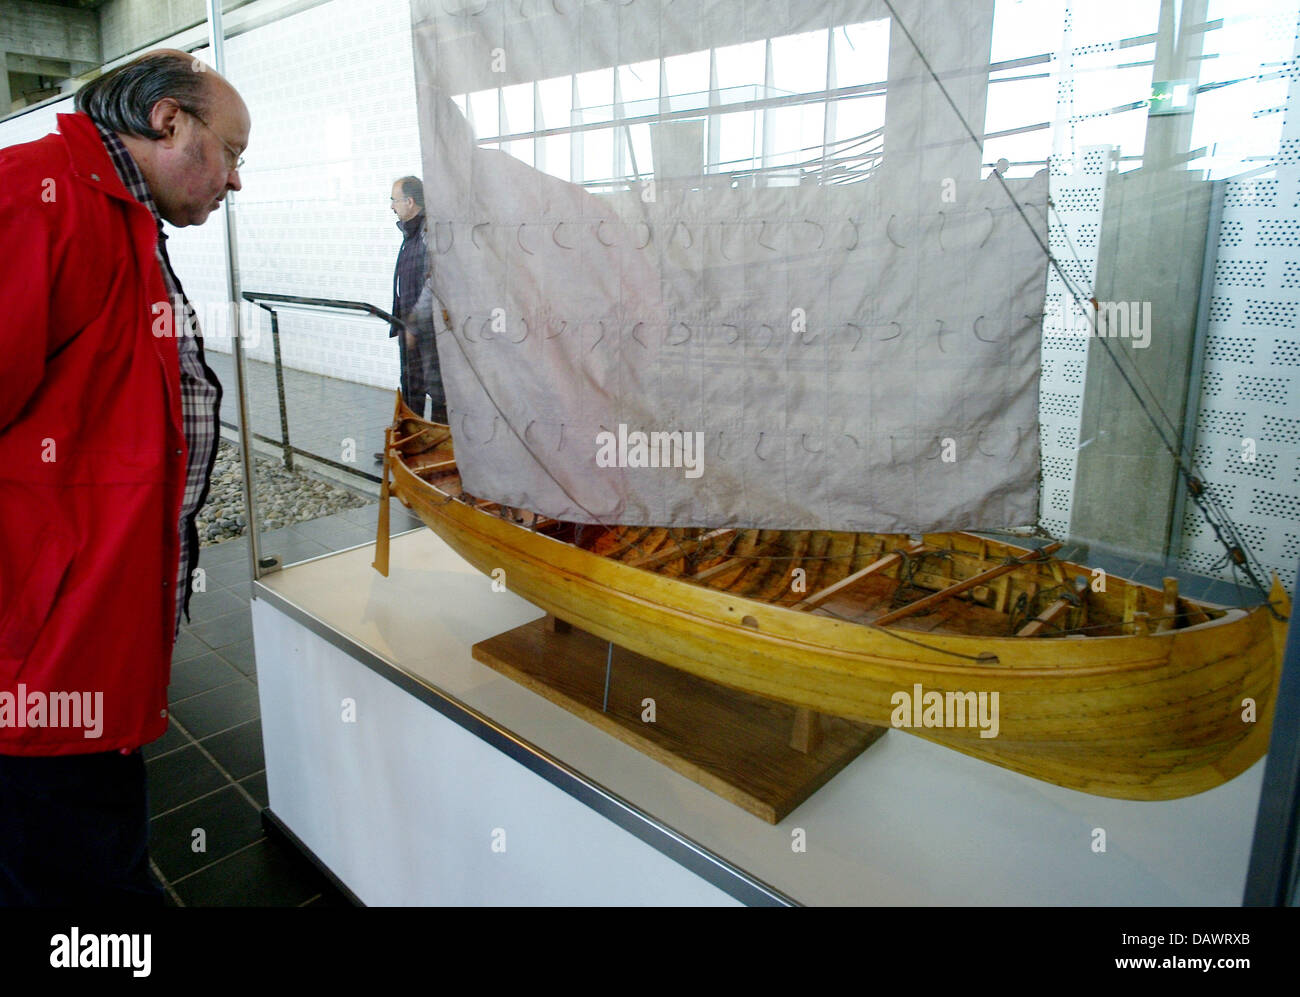 A visitor takes a look at a model of a Viking ship of the 11th century, discoverd in the Roskilde fjord in 1962, Stock Photo